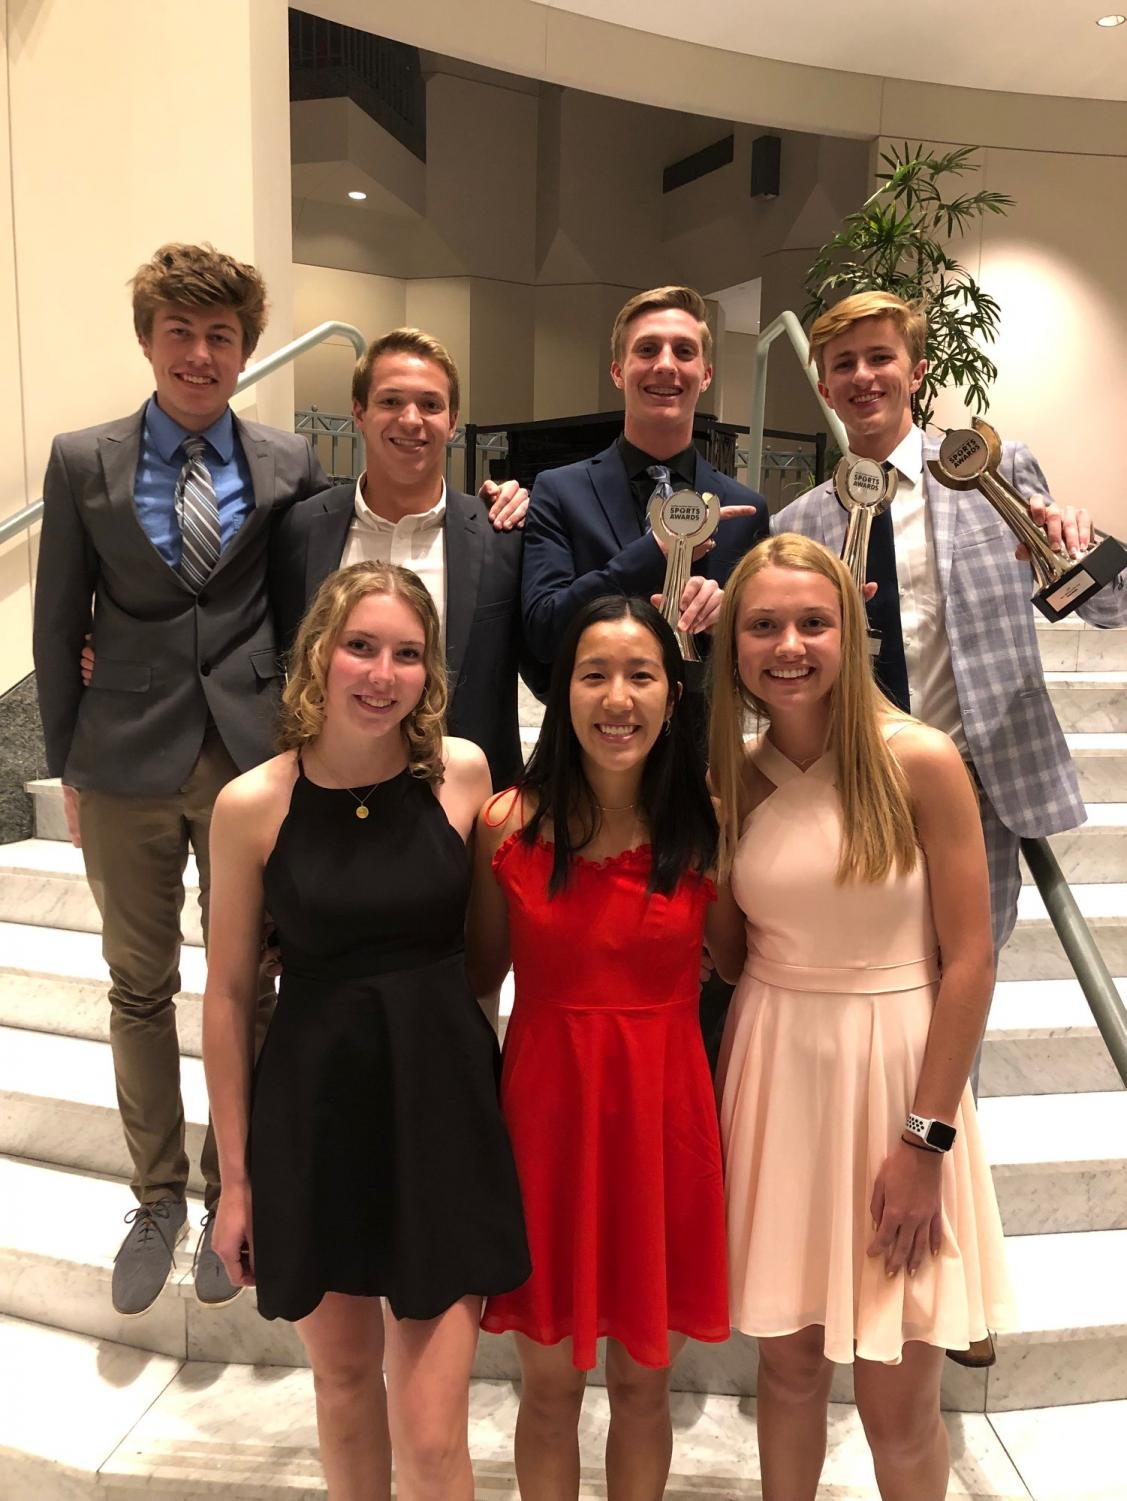 Pierce Stastney, Zach Teplin, Jared Schneider, Drew Bosley, and Paige Weir, seniors, Natalie Yang, junior, and Leane Willemse, sophomore, pose after the awards ceremony. Not pictured Taylor Raskin, junior.